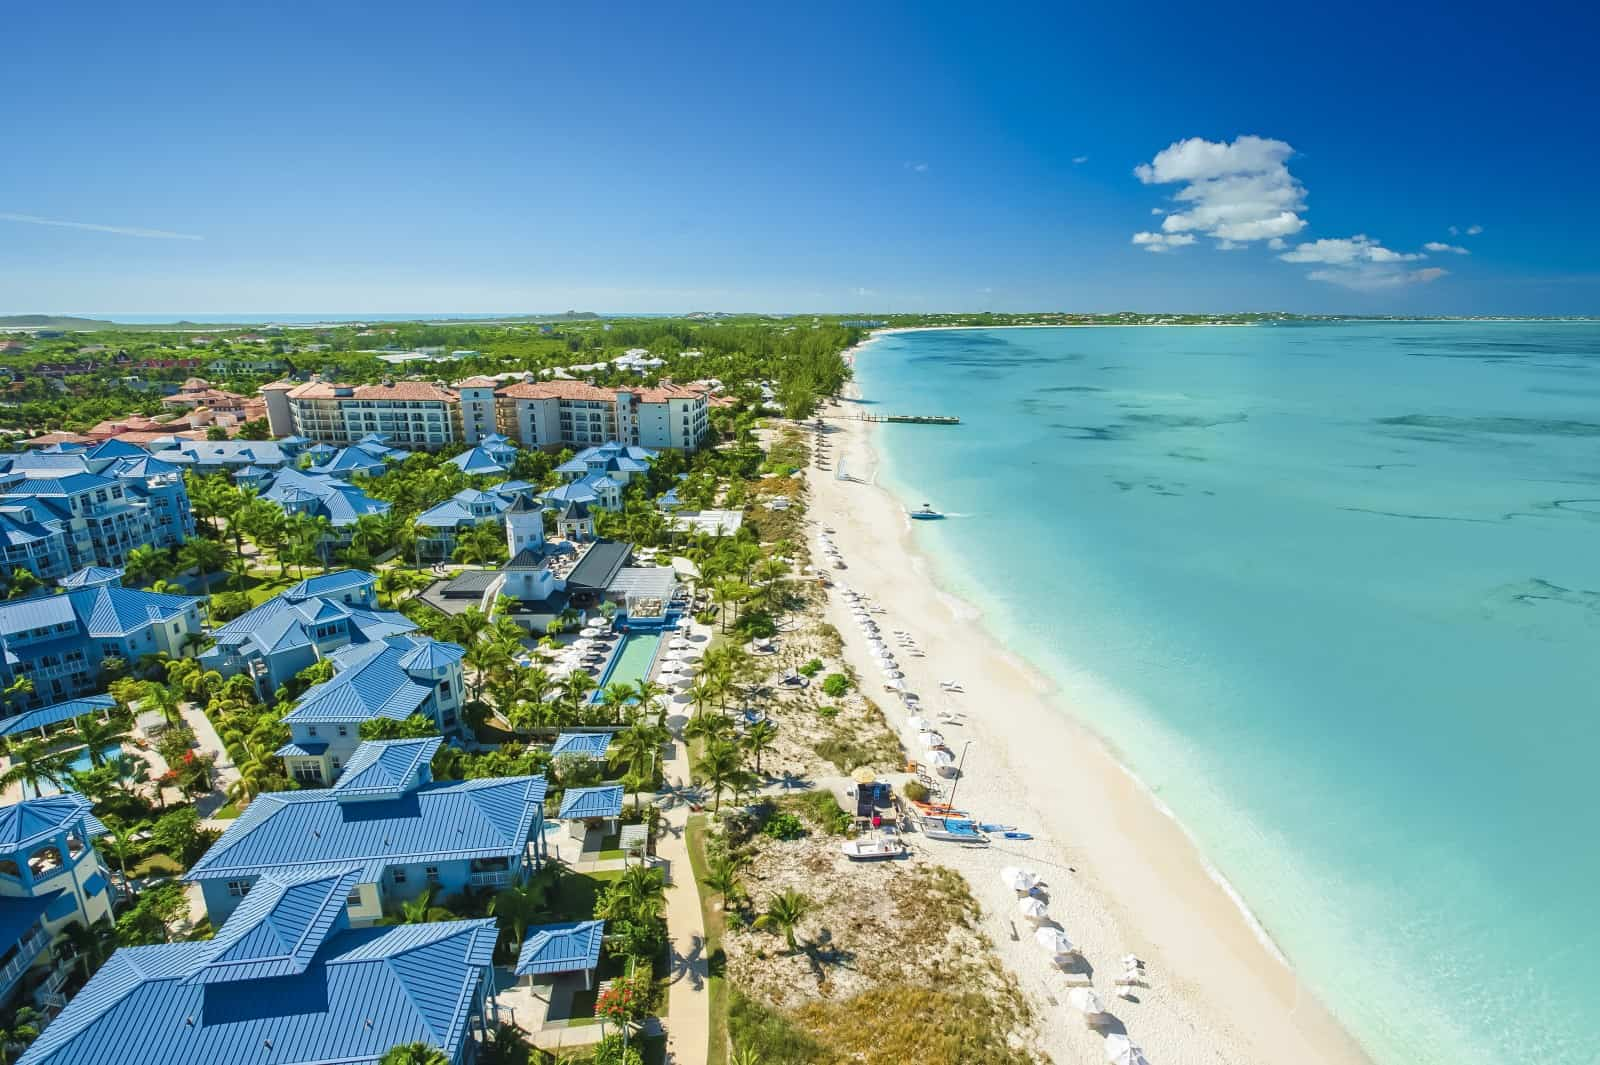 10 Reasons to Take Your Family to Beaches Turks and Caicos 8